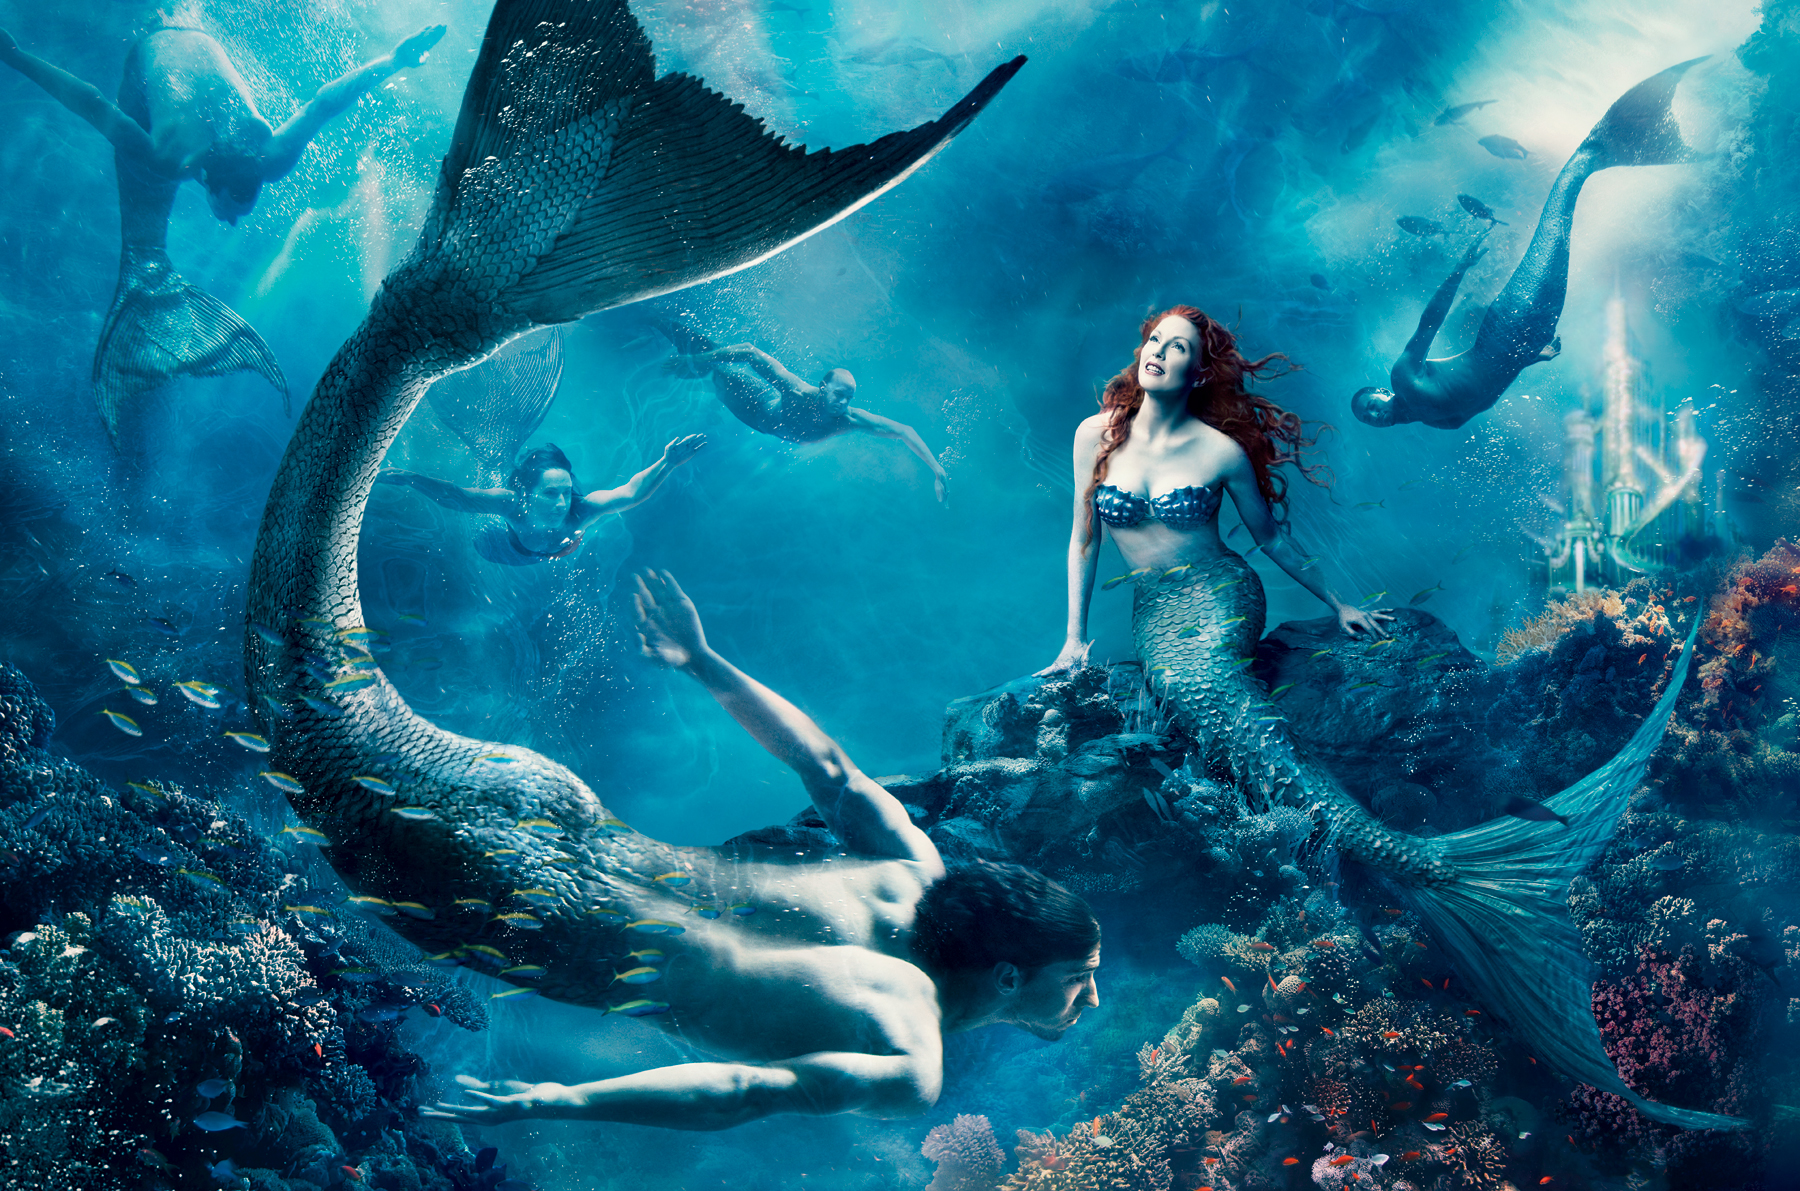 Ariel Wallpaper Mermaids Rock Love Poster Film Indonesia